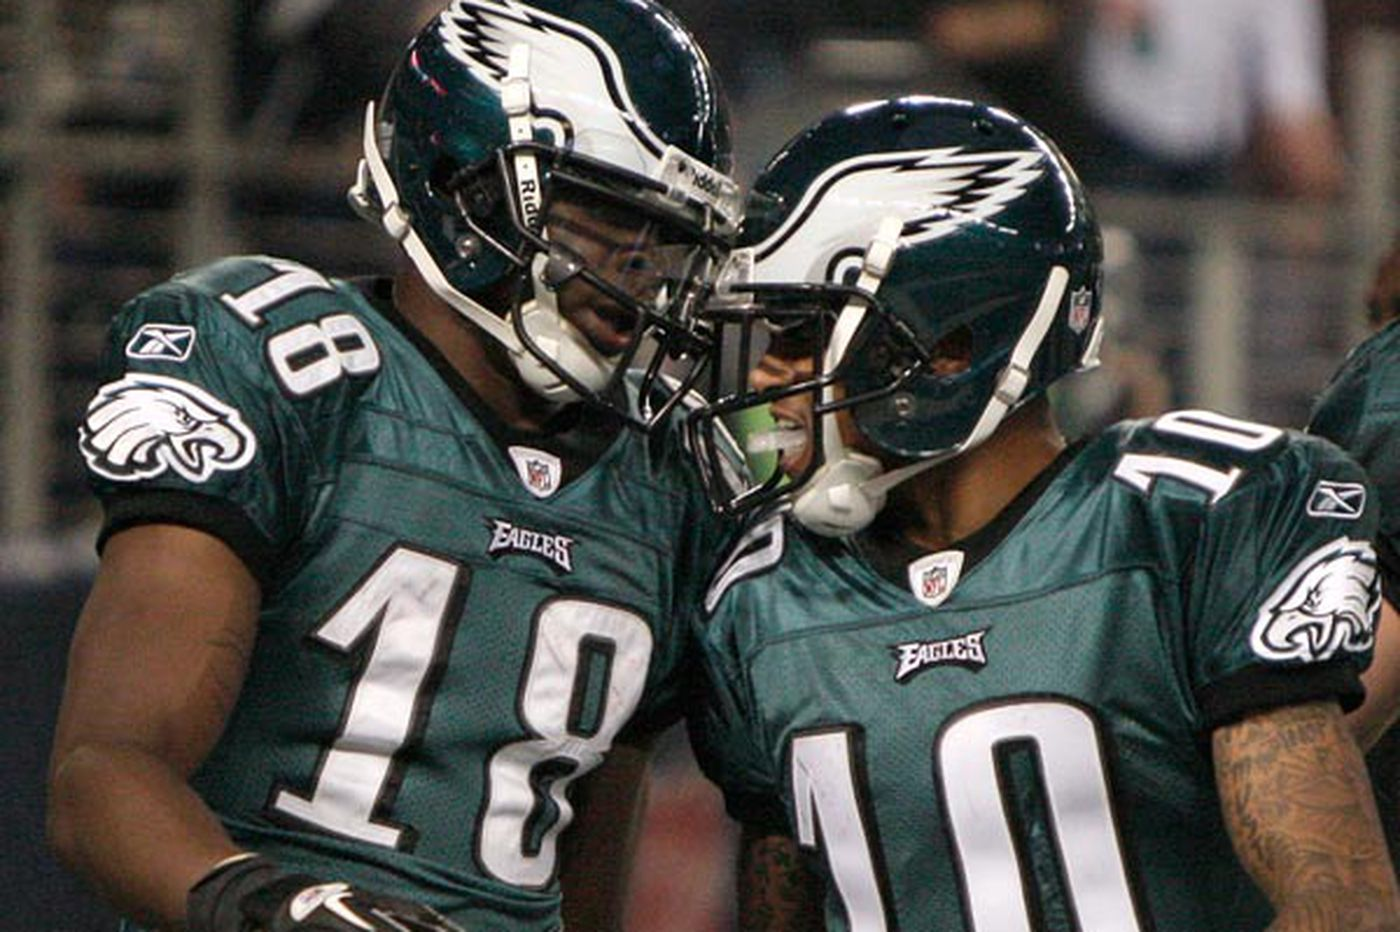 Eagles Notes: Maclin says he and DeSean still get along fine